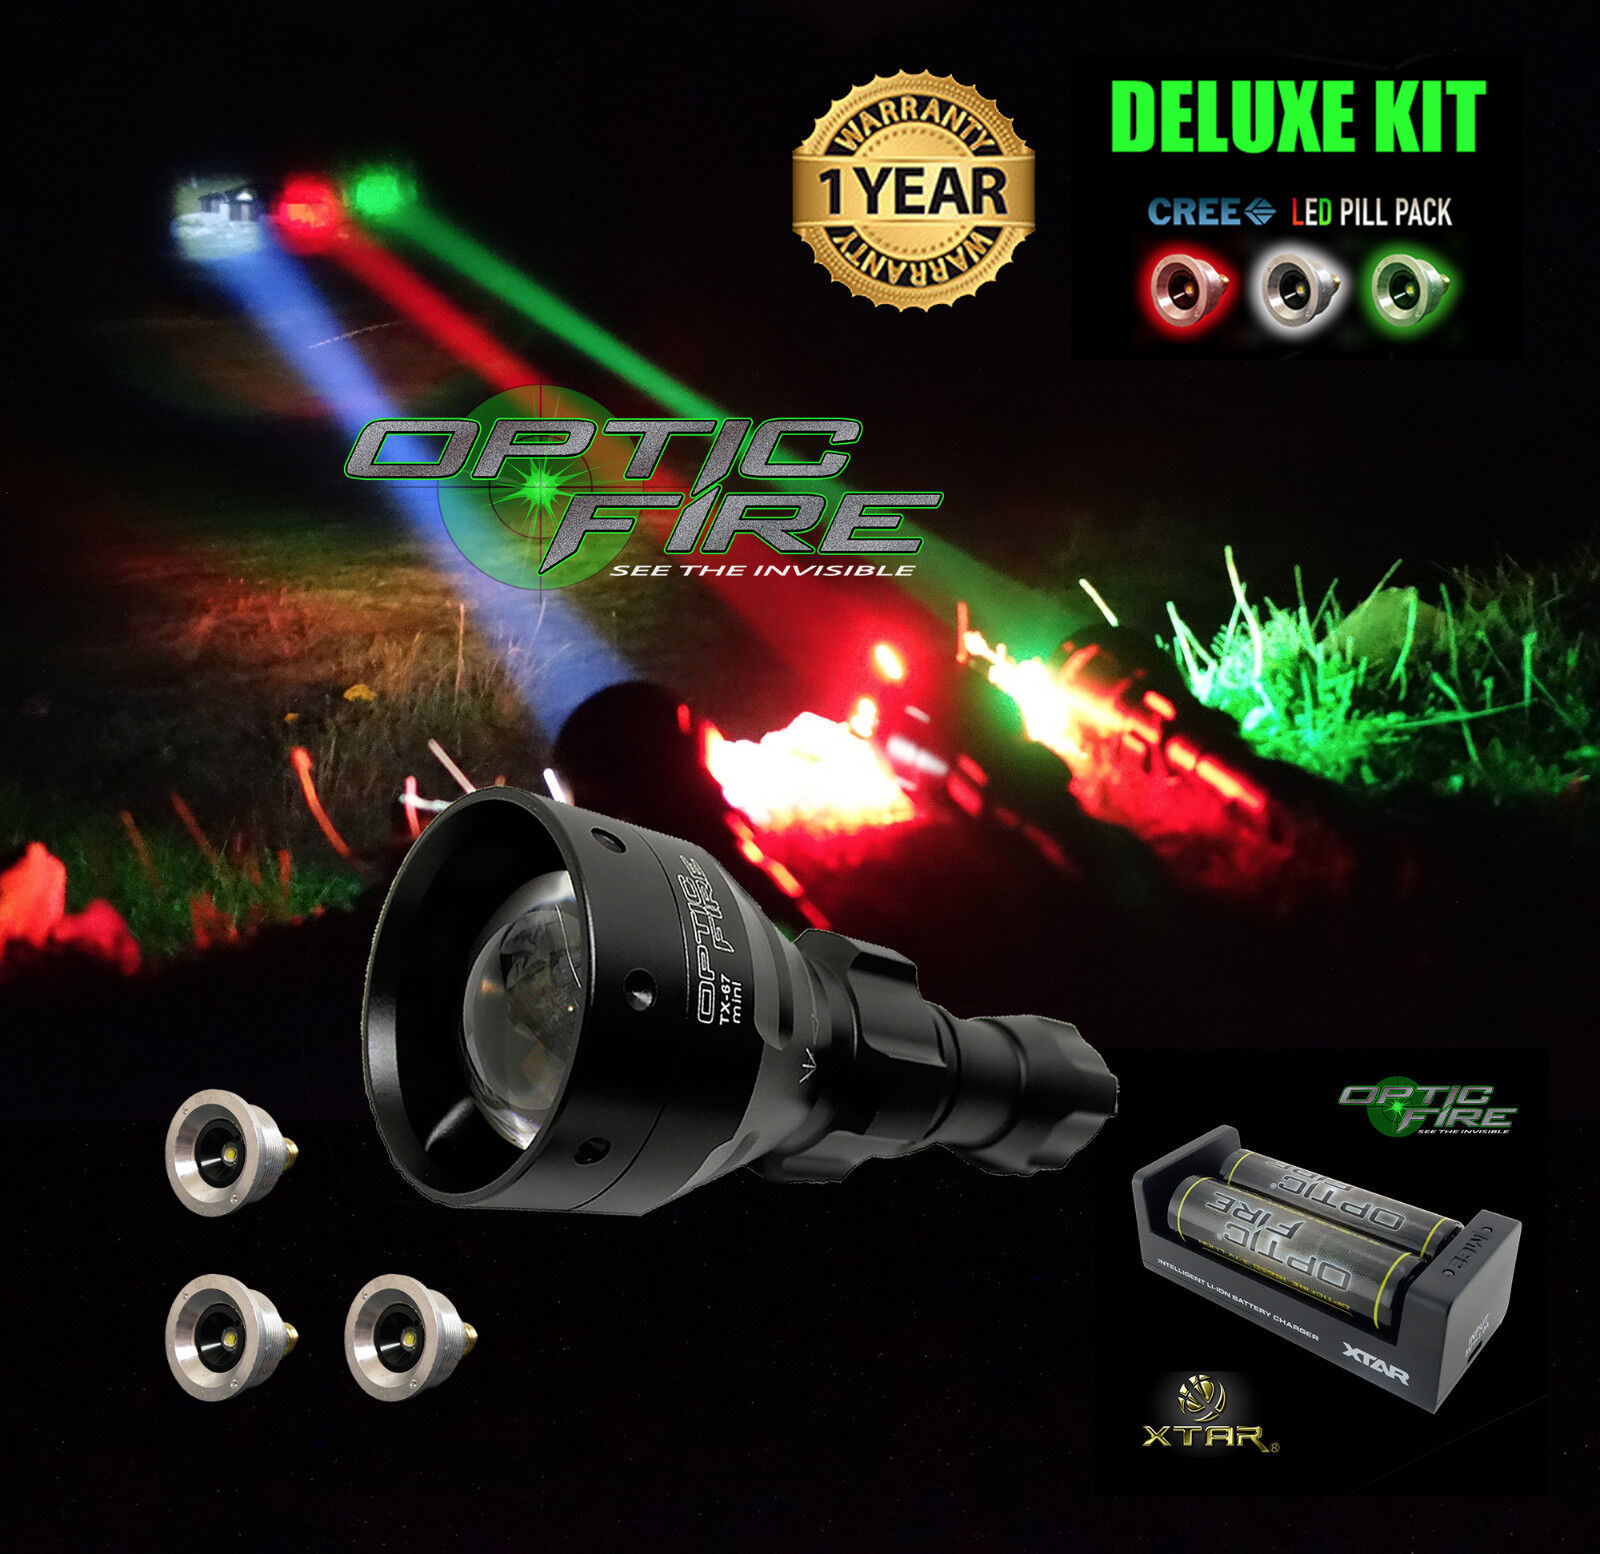 Opticfire® TX-67 T67 mini Deluxe Supreme LED hunting torch gun light lamp kit NV